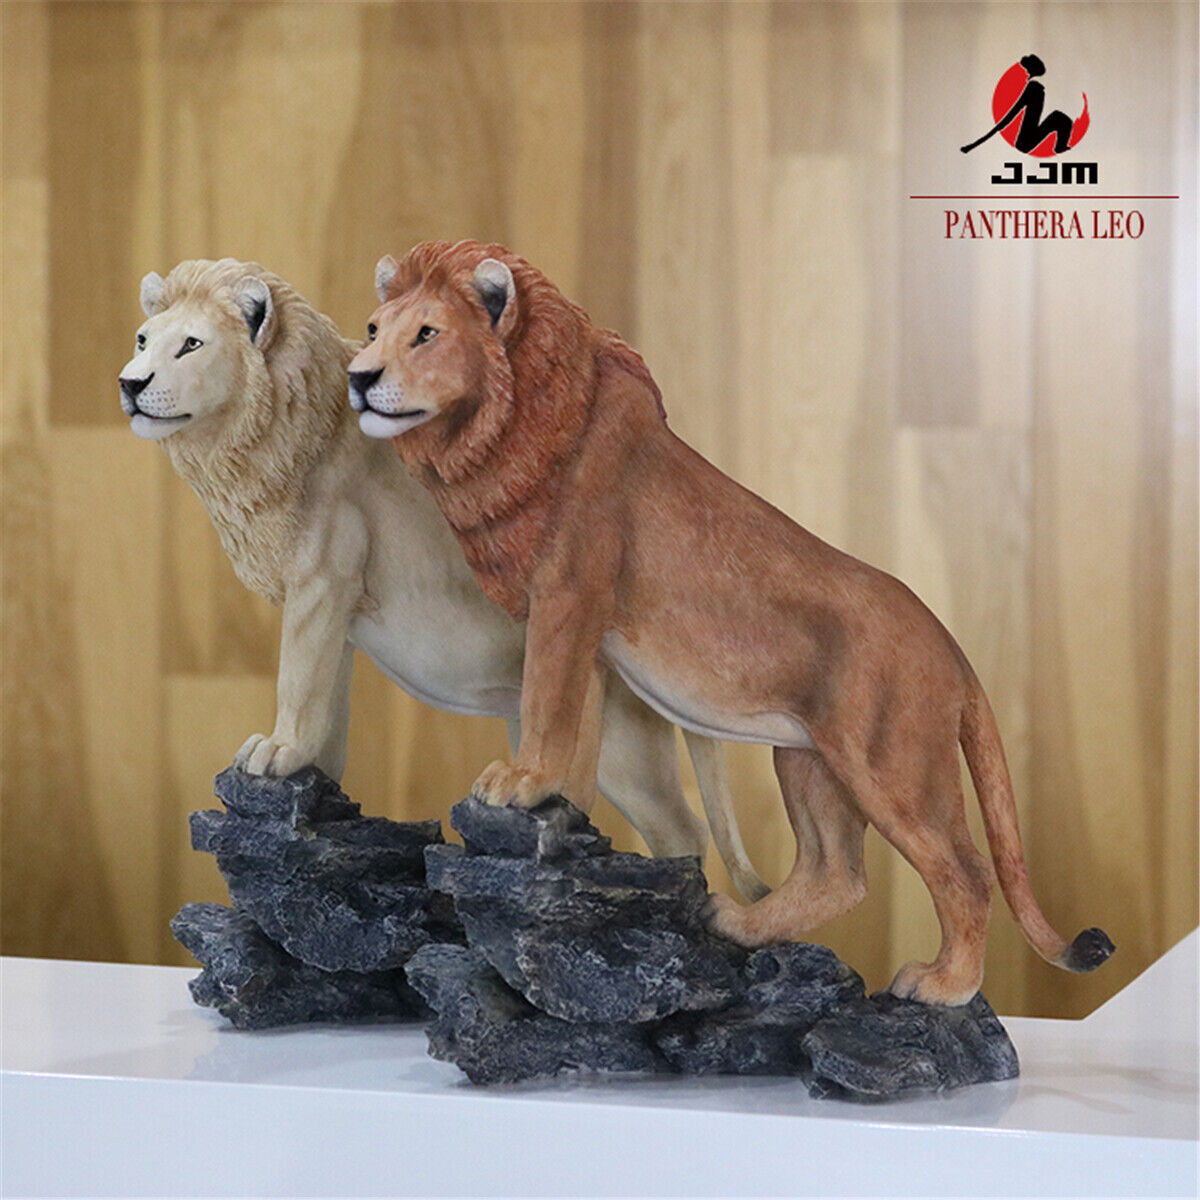 JJM Africa Lion Figure Panthera leo Toy Animal Collector Artware Home Decoration